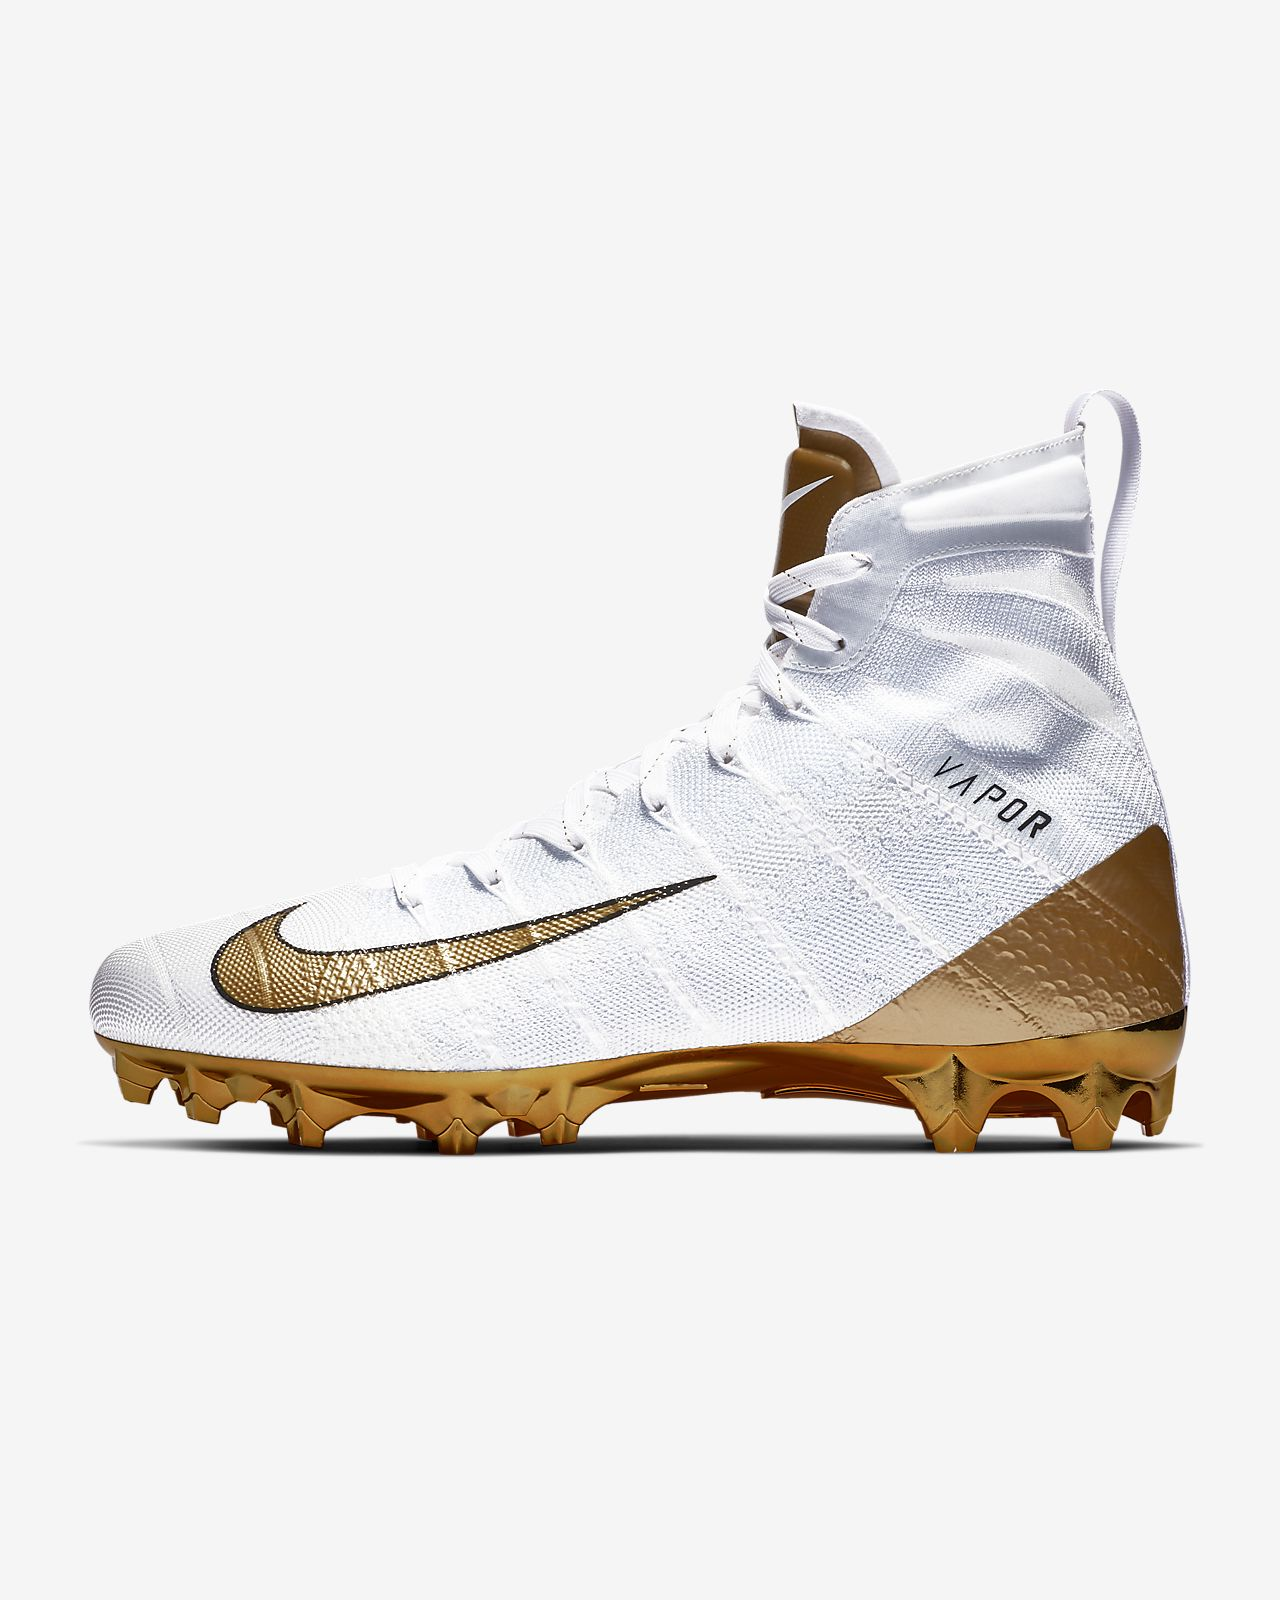 Nike Vapor Untouchable 3 Elite Football Cleat. Nike.com 1d142b120